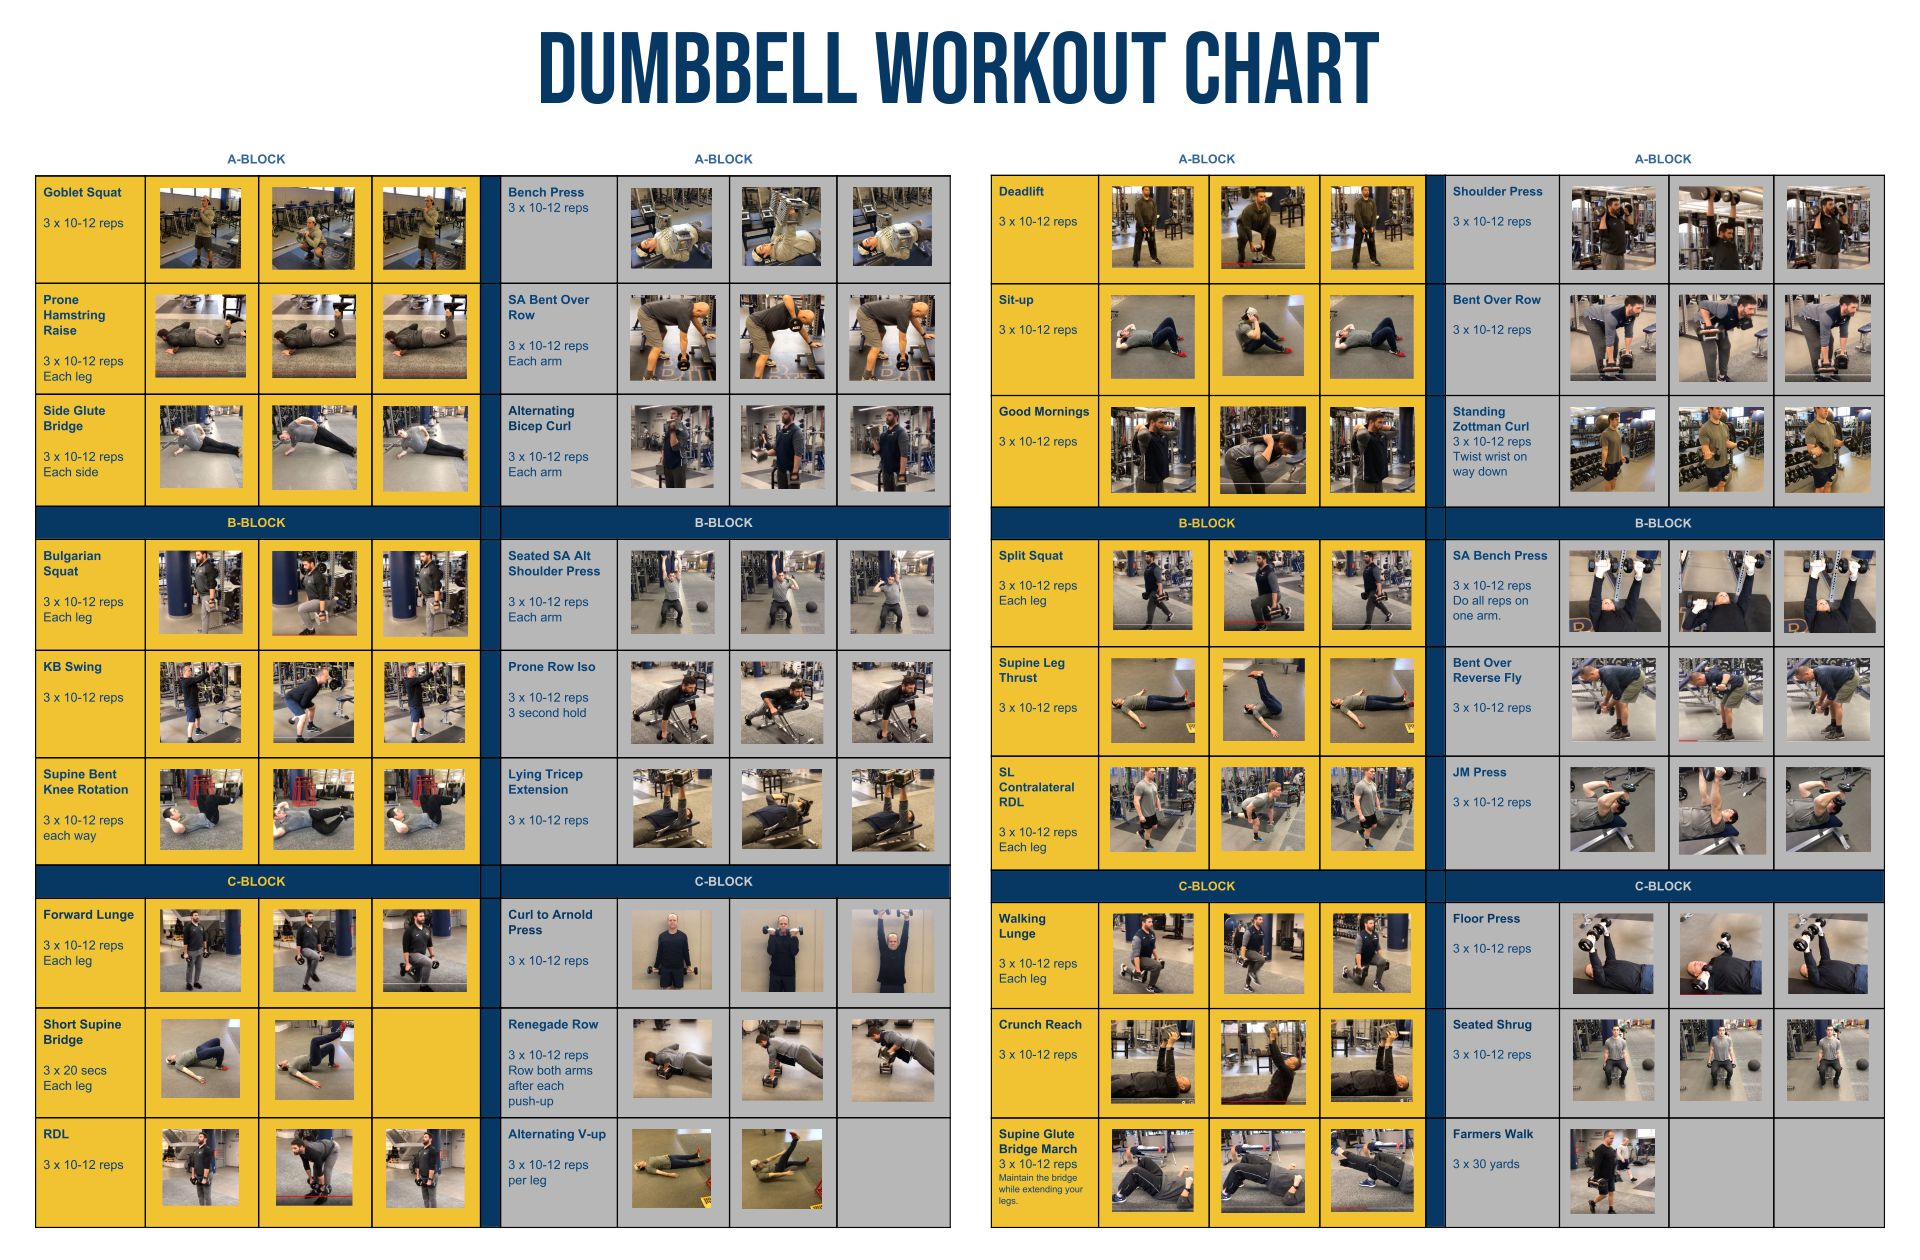 Dumbbell Workout Chart Printable